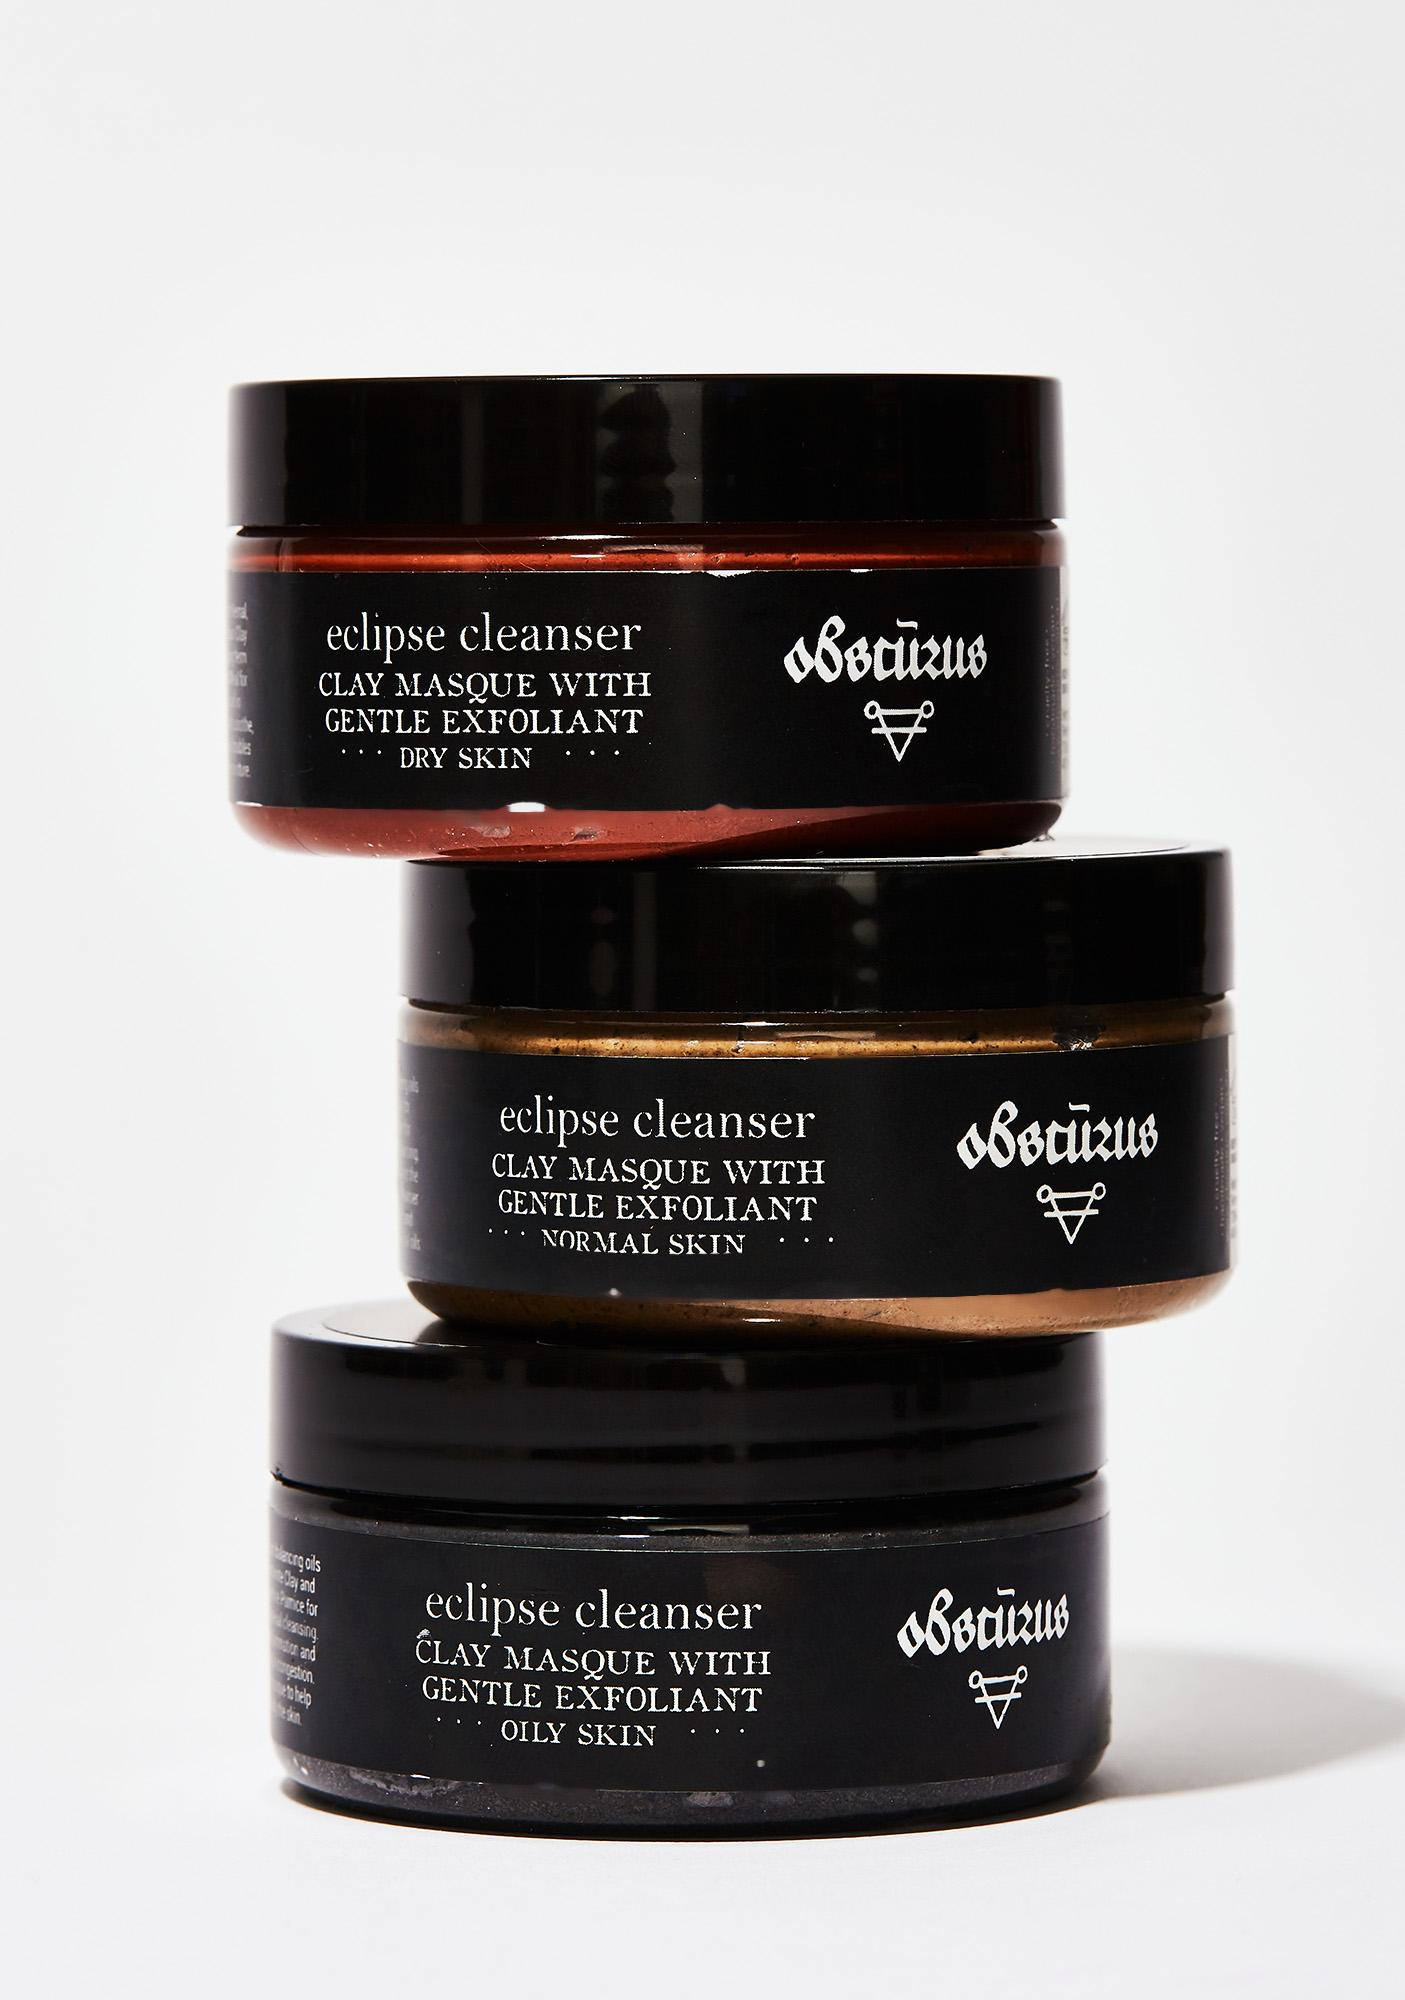 Obscurus Eclipse Cleanser & Clay Masque- Dry Skin